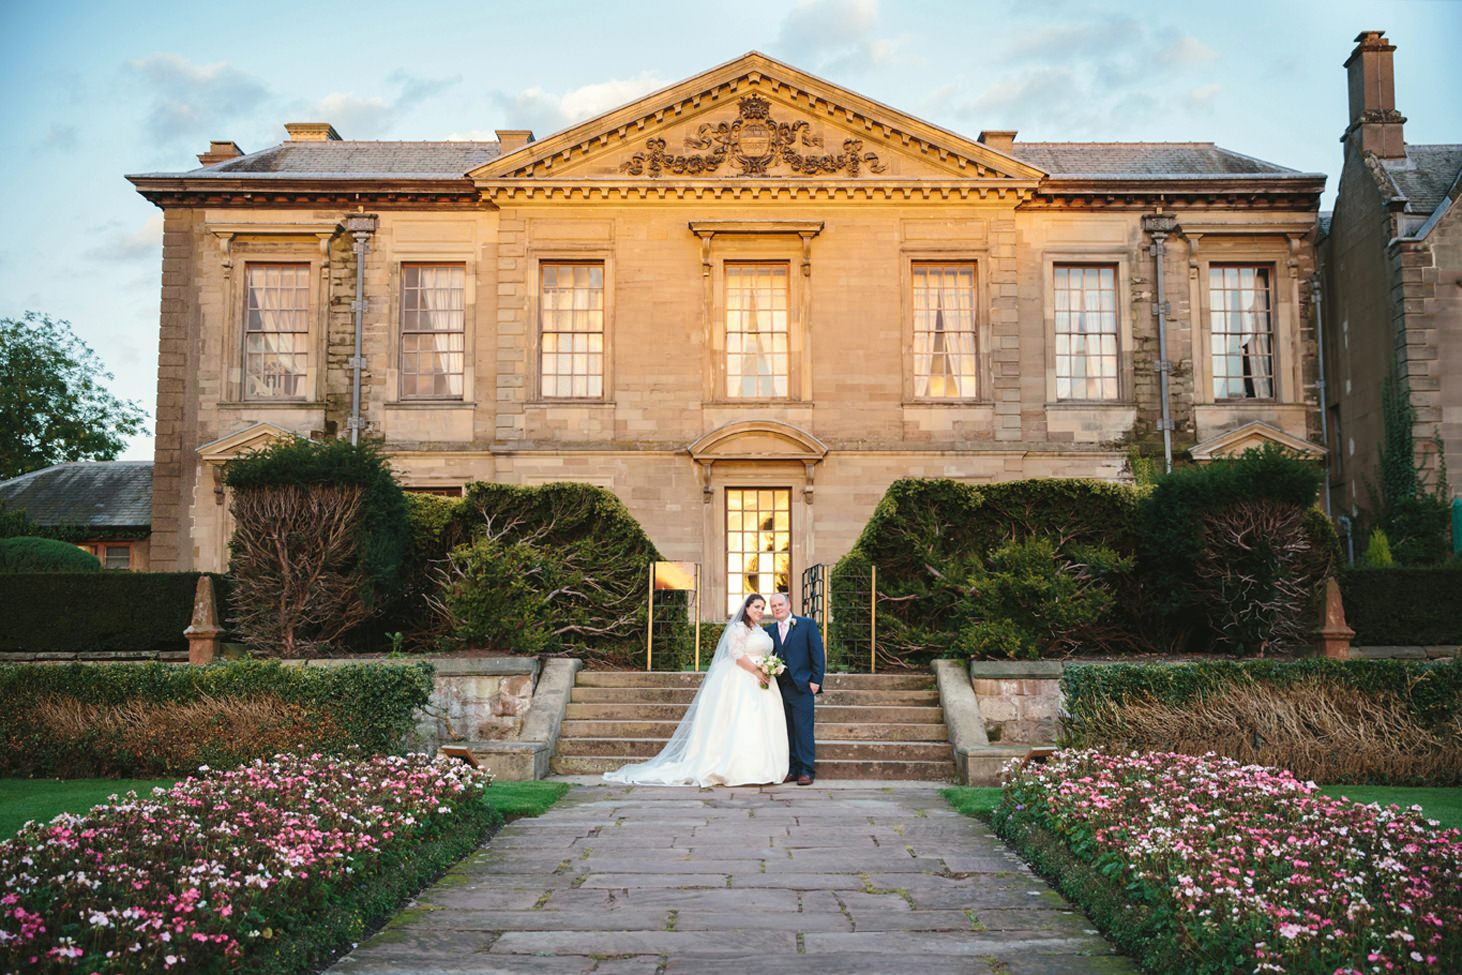 Coombe Abbey wedding photography Sarah Ann Wright 086